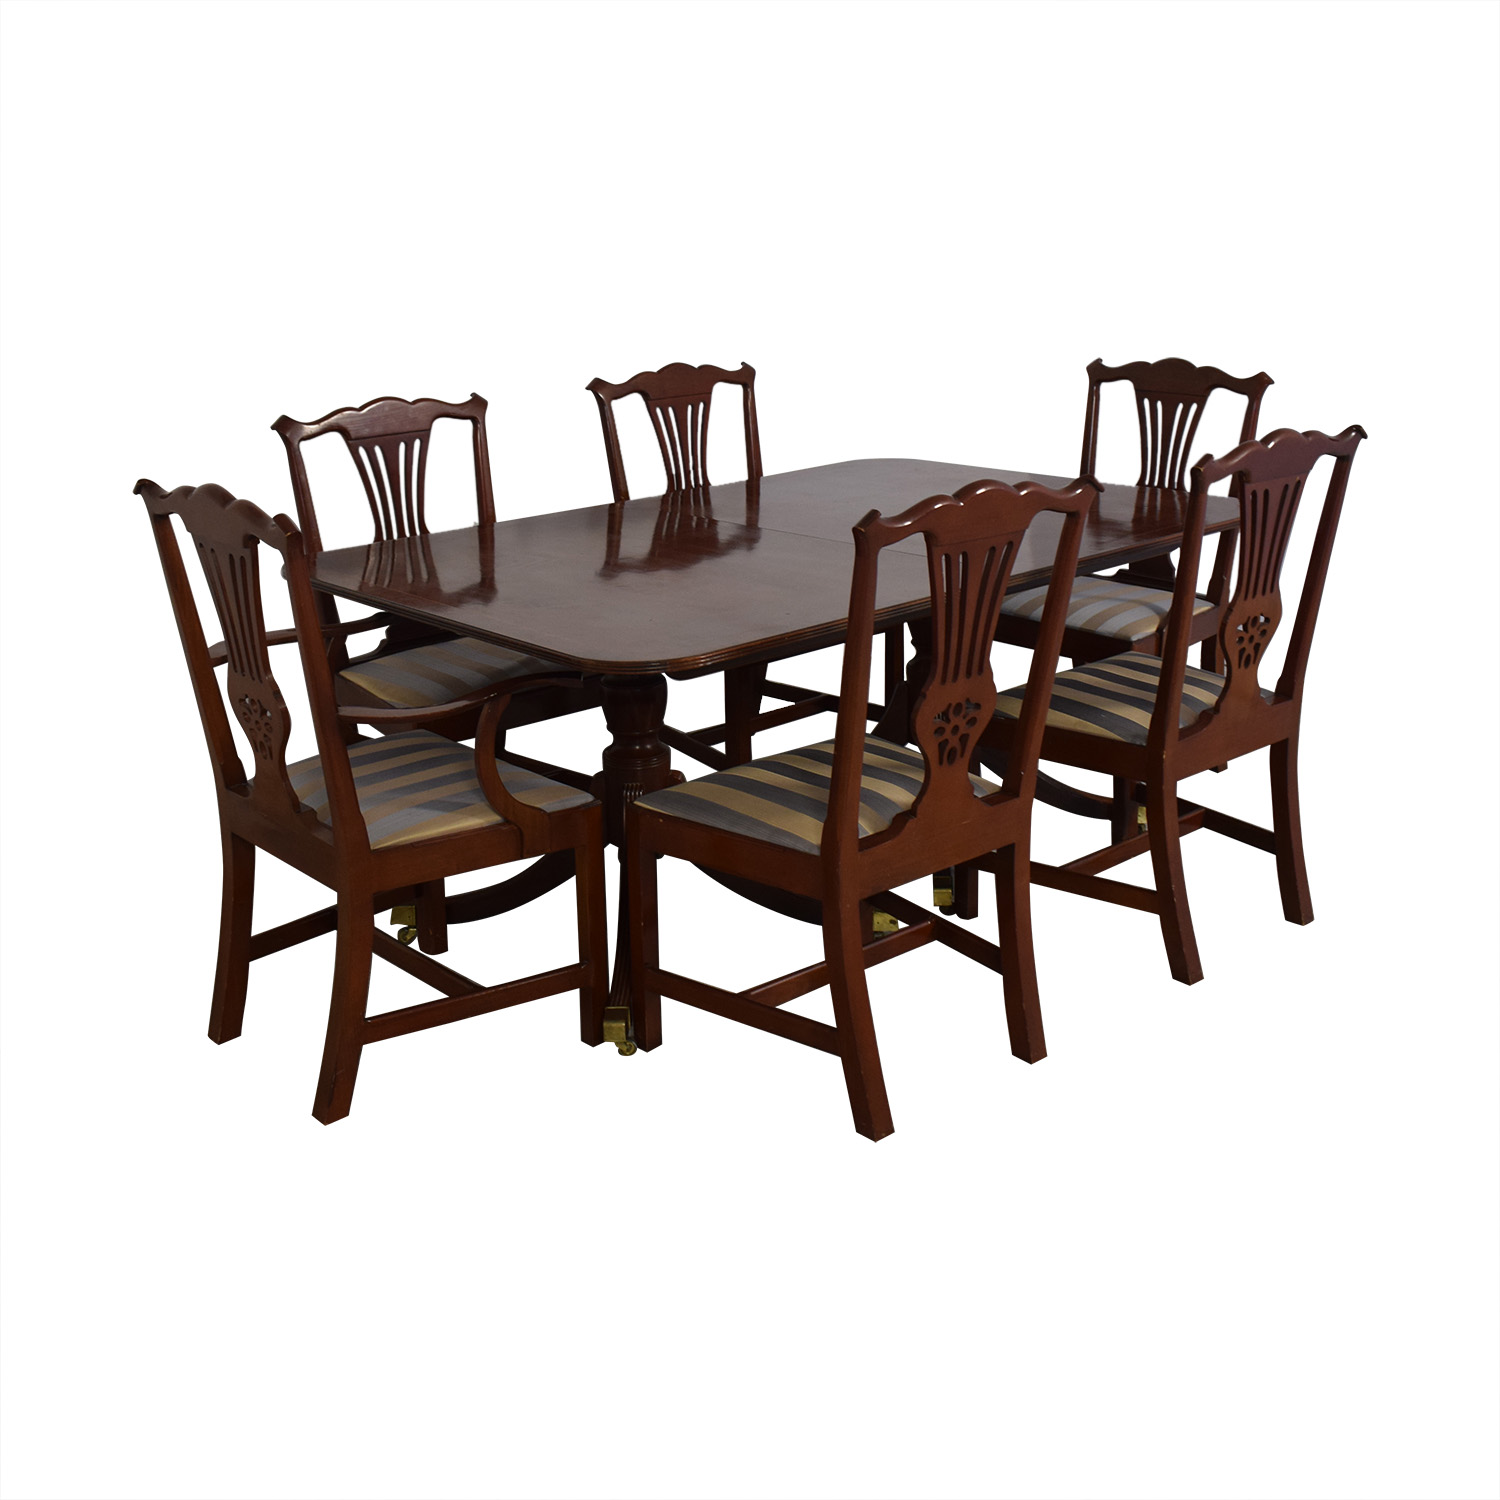 Baker Furniture Dining Room Table and Chairs / Dining Sets